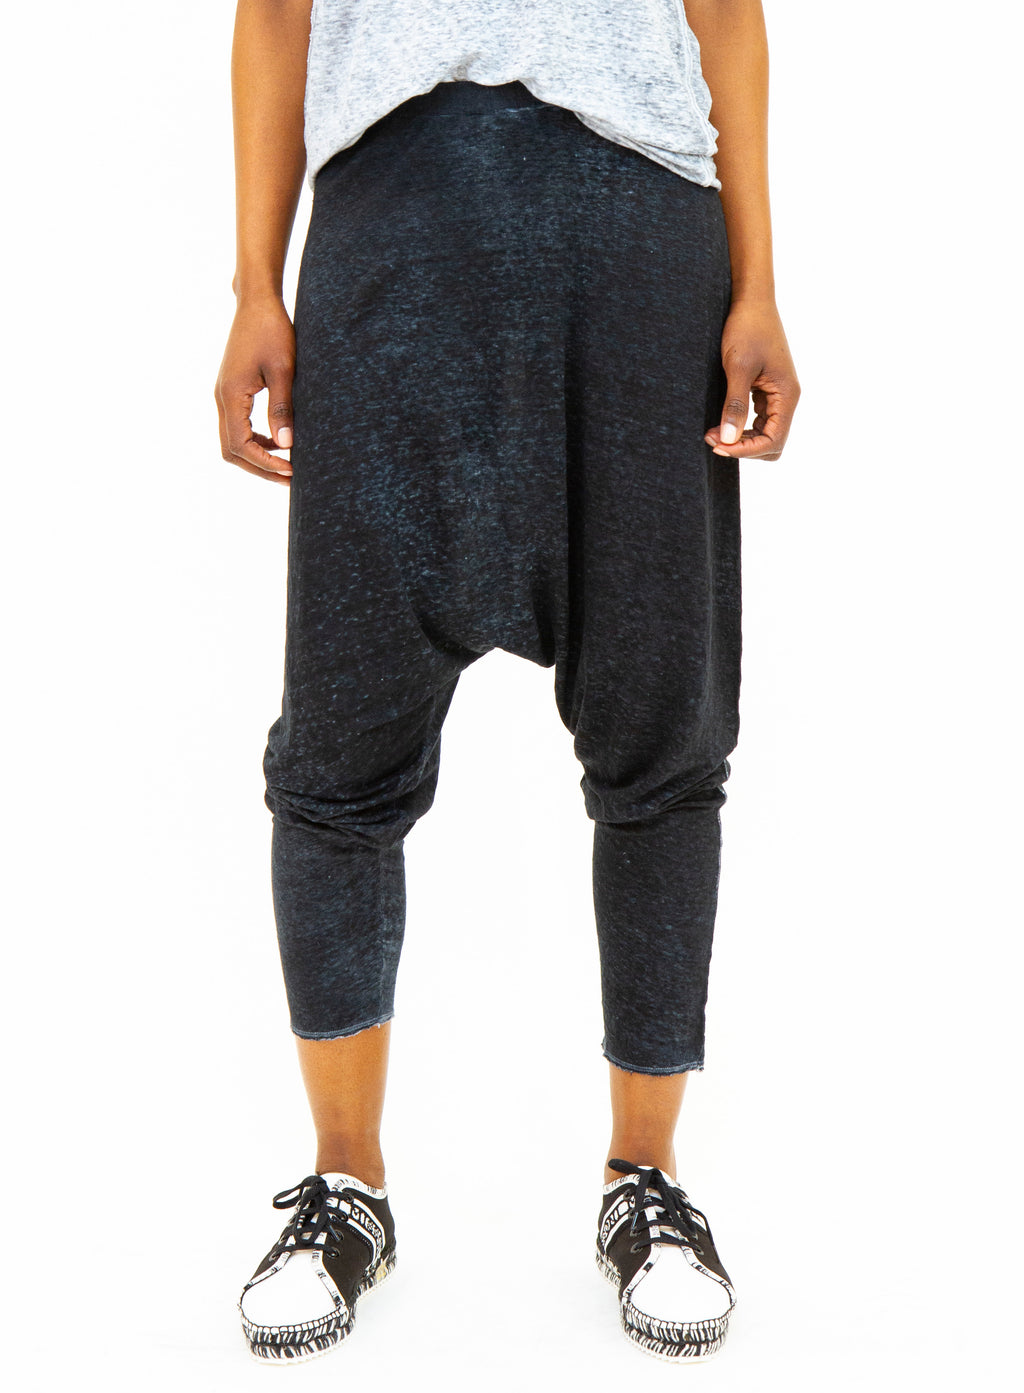 AVANT TOI | Harem Floating Jogging Pants